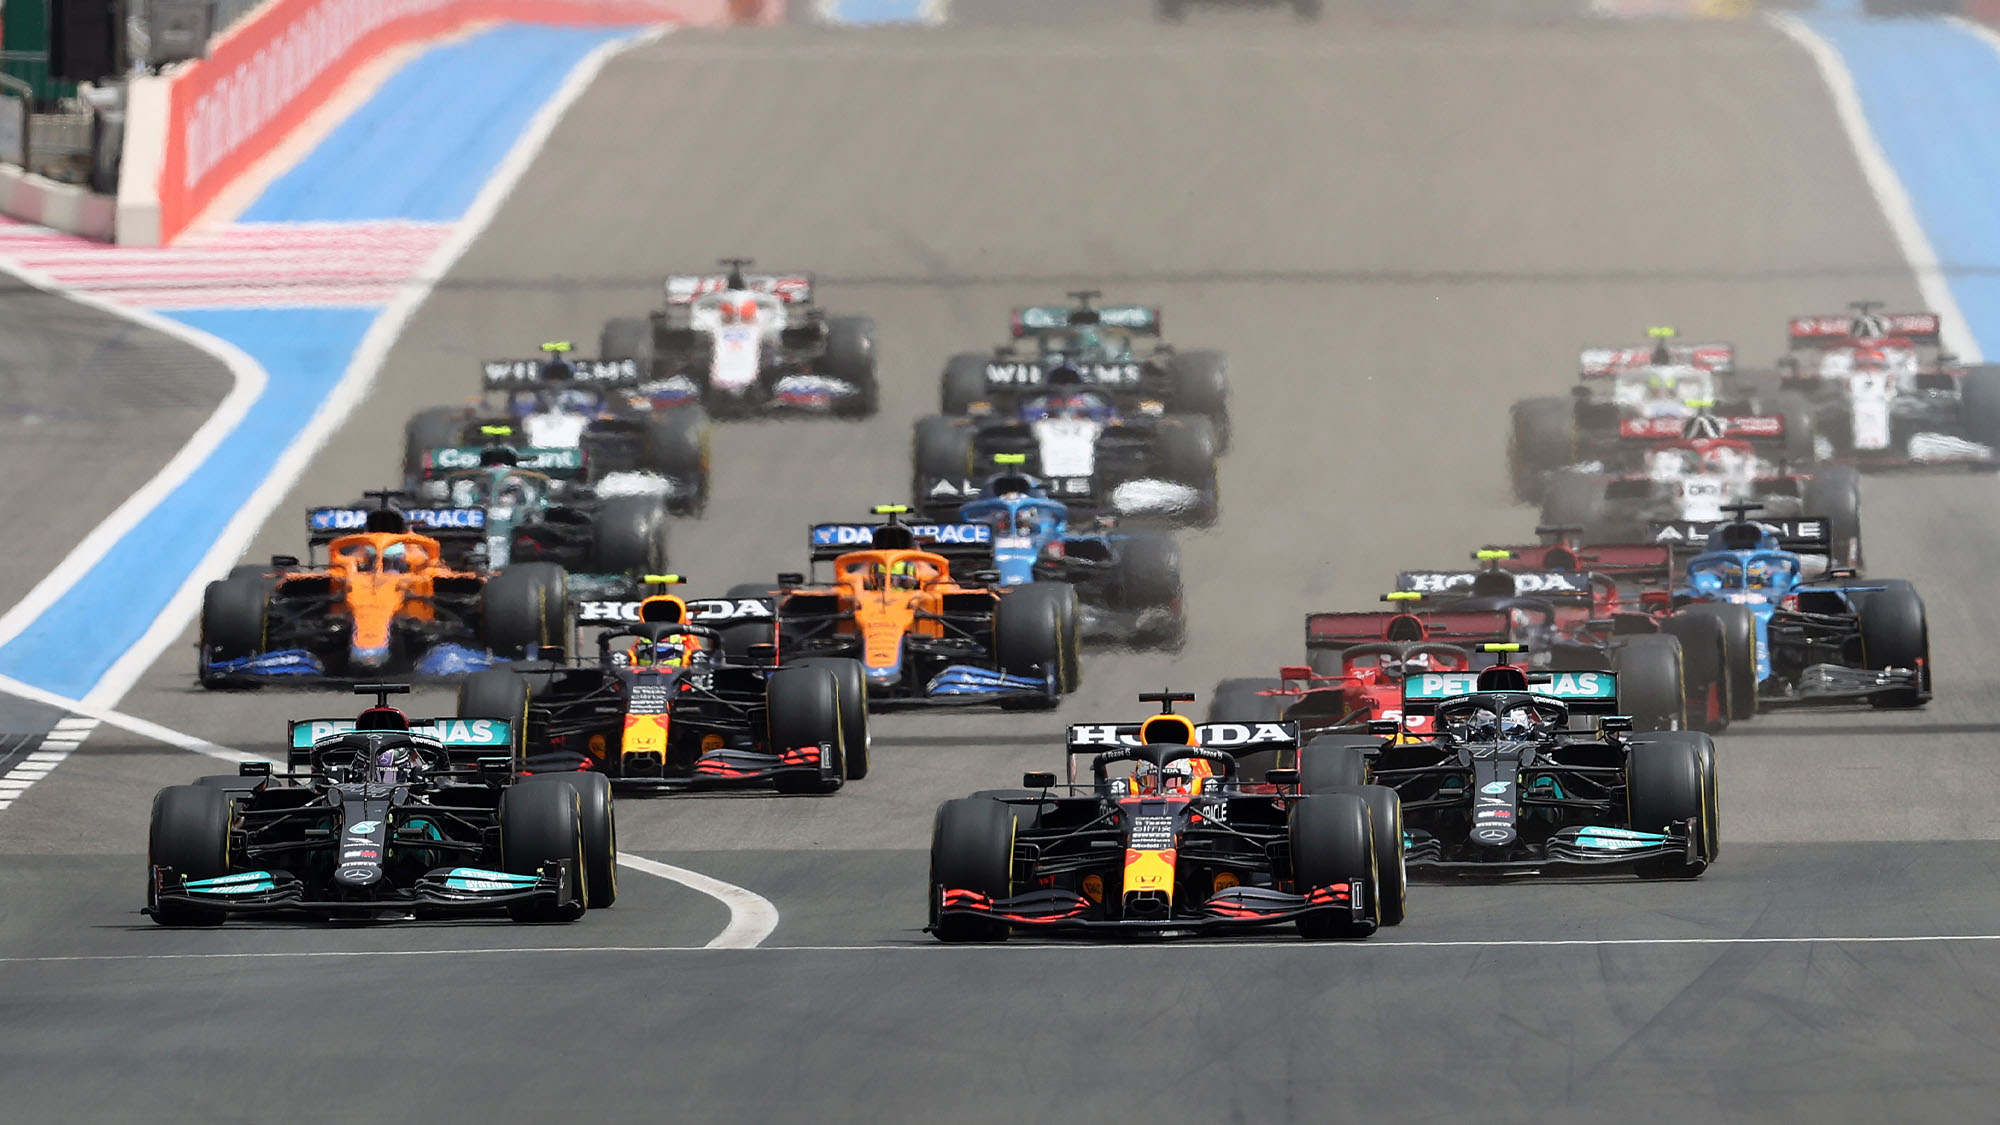 LE CASTELLET, FRANCE - JUNE 20: Max Verstappen of Netherlands and Red Bull Racing leads Lewis Hamilton of Great Britain into the first corner at the start of the F1 Grand Prix of France at Circuit Paul Ricard on June 20, 2021 in Le Castellet, France. (Photo by Clive Rose/Getty Images)